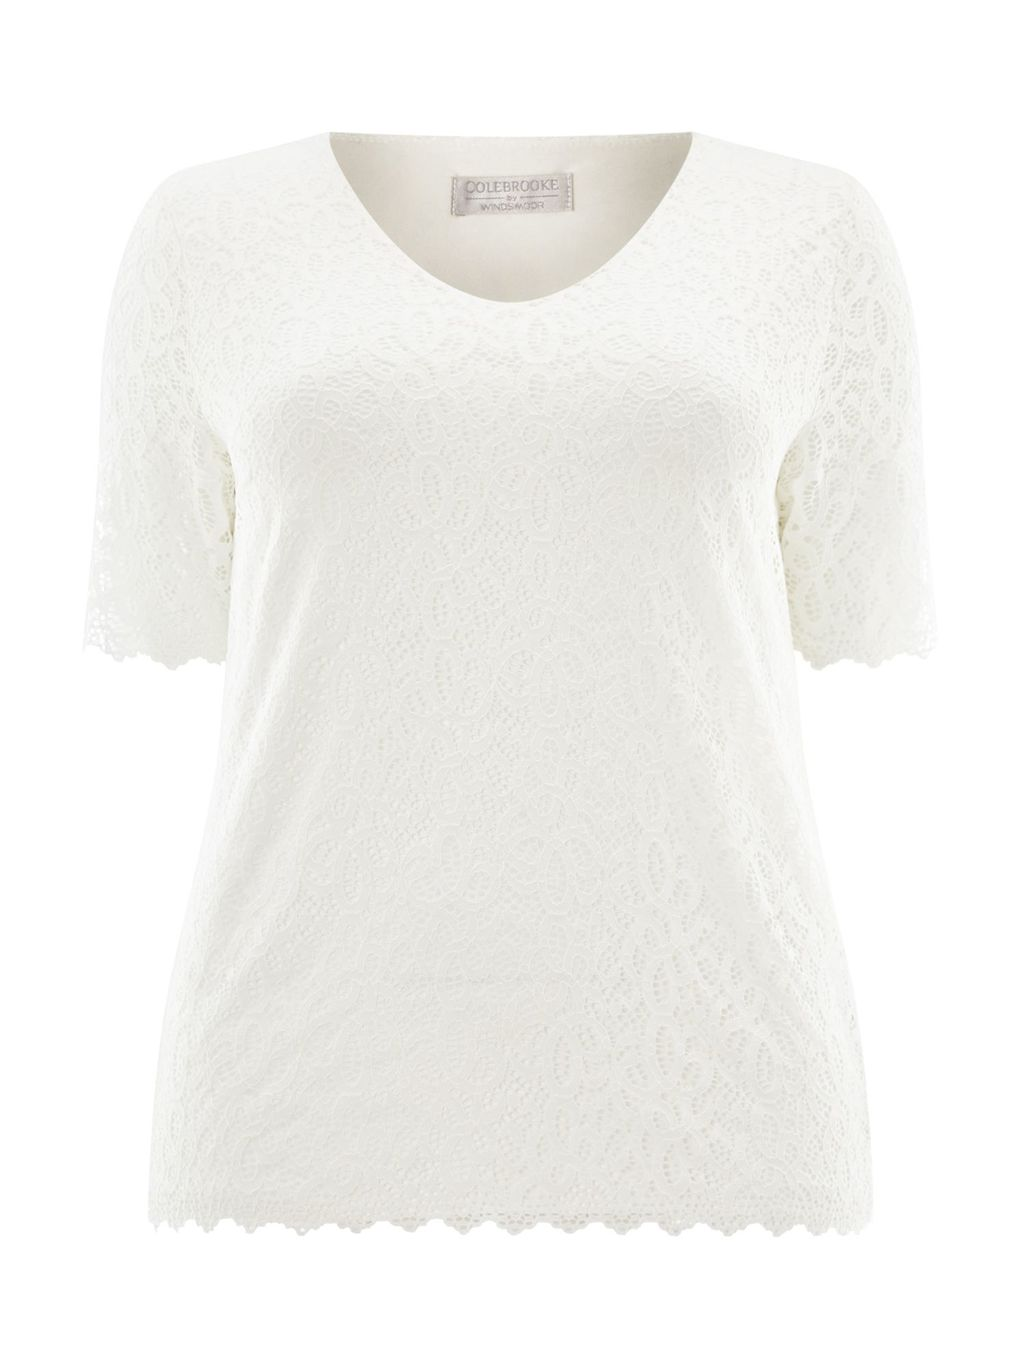 Ivory Lace Jersey Top, Neutral - neckline: v-neck; predominant colour: ivory/cream; occasions: casual; length: standard; style: top; fibres: viscose/rayon - stretch; fit: body skimming; sleeve length: short sleeve; sleeve style: standard; texture group: lace; pattern type: fabric; pattern size: light/subtle; pattern: patterned/print; season: a/w 2015; wardrobe: highlight